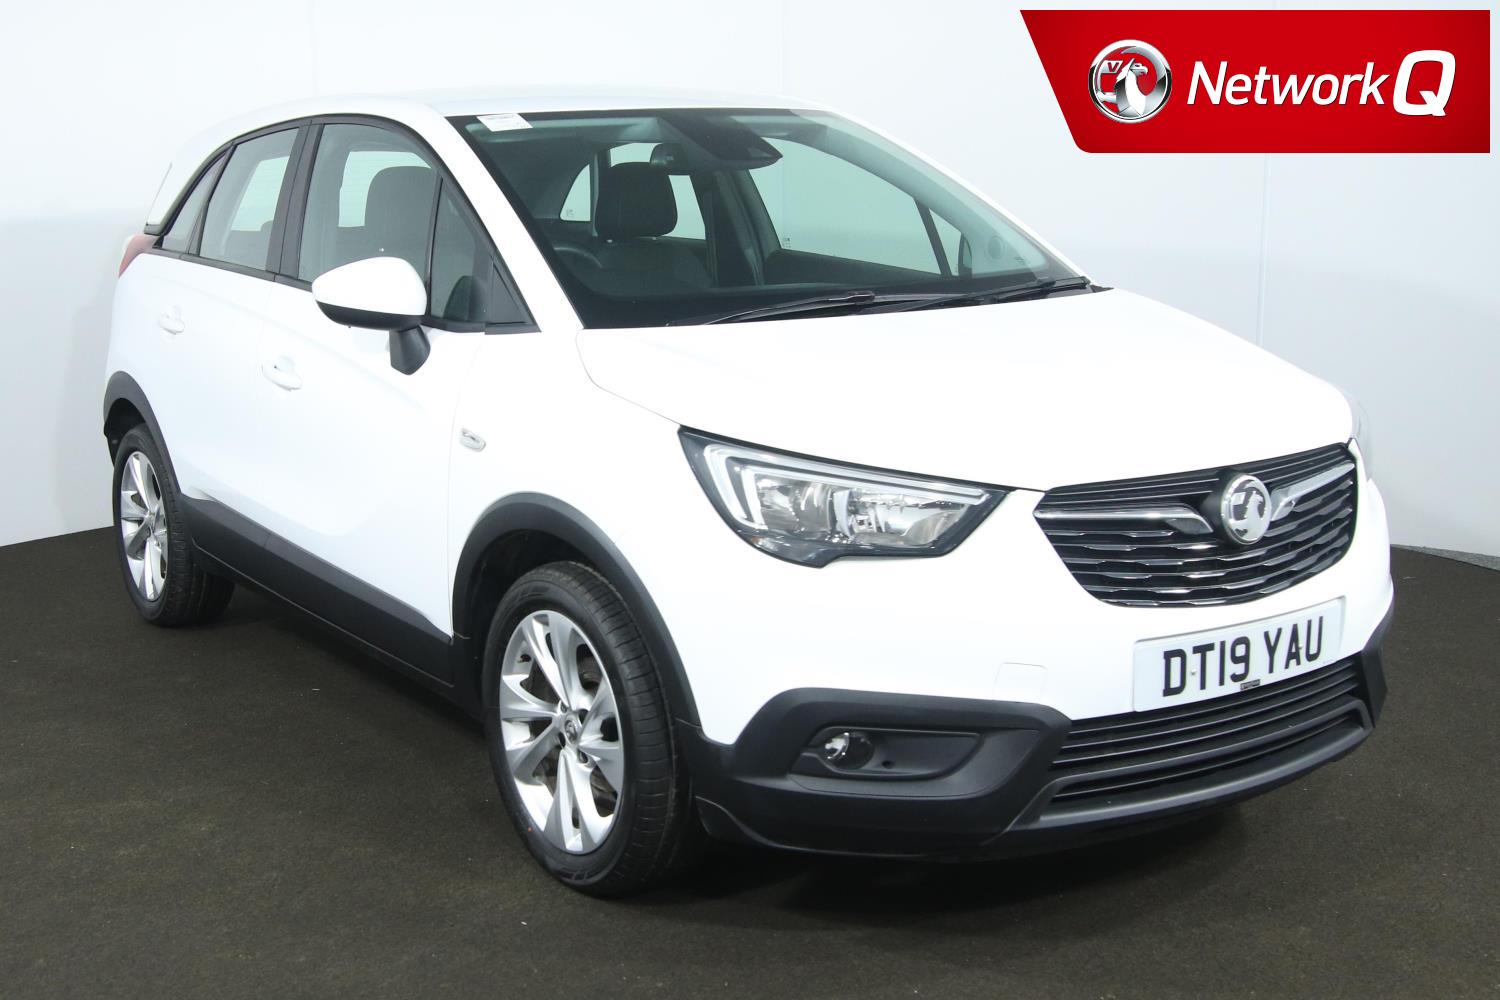 Vauxhall Crossland X 1.5 Turbo D Ecotec (102 PS) SE 5DR (Start Stop)